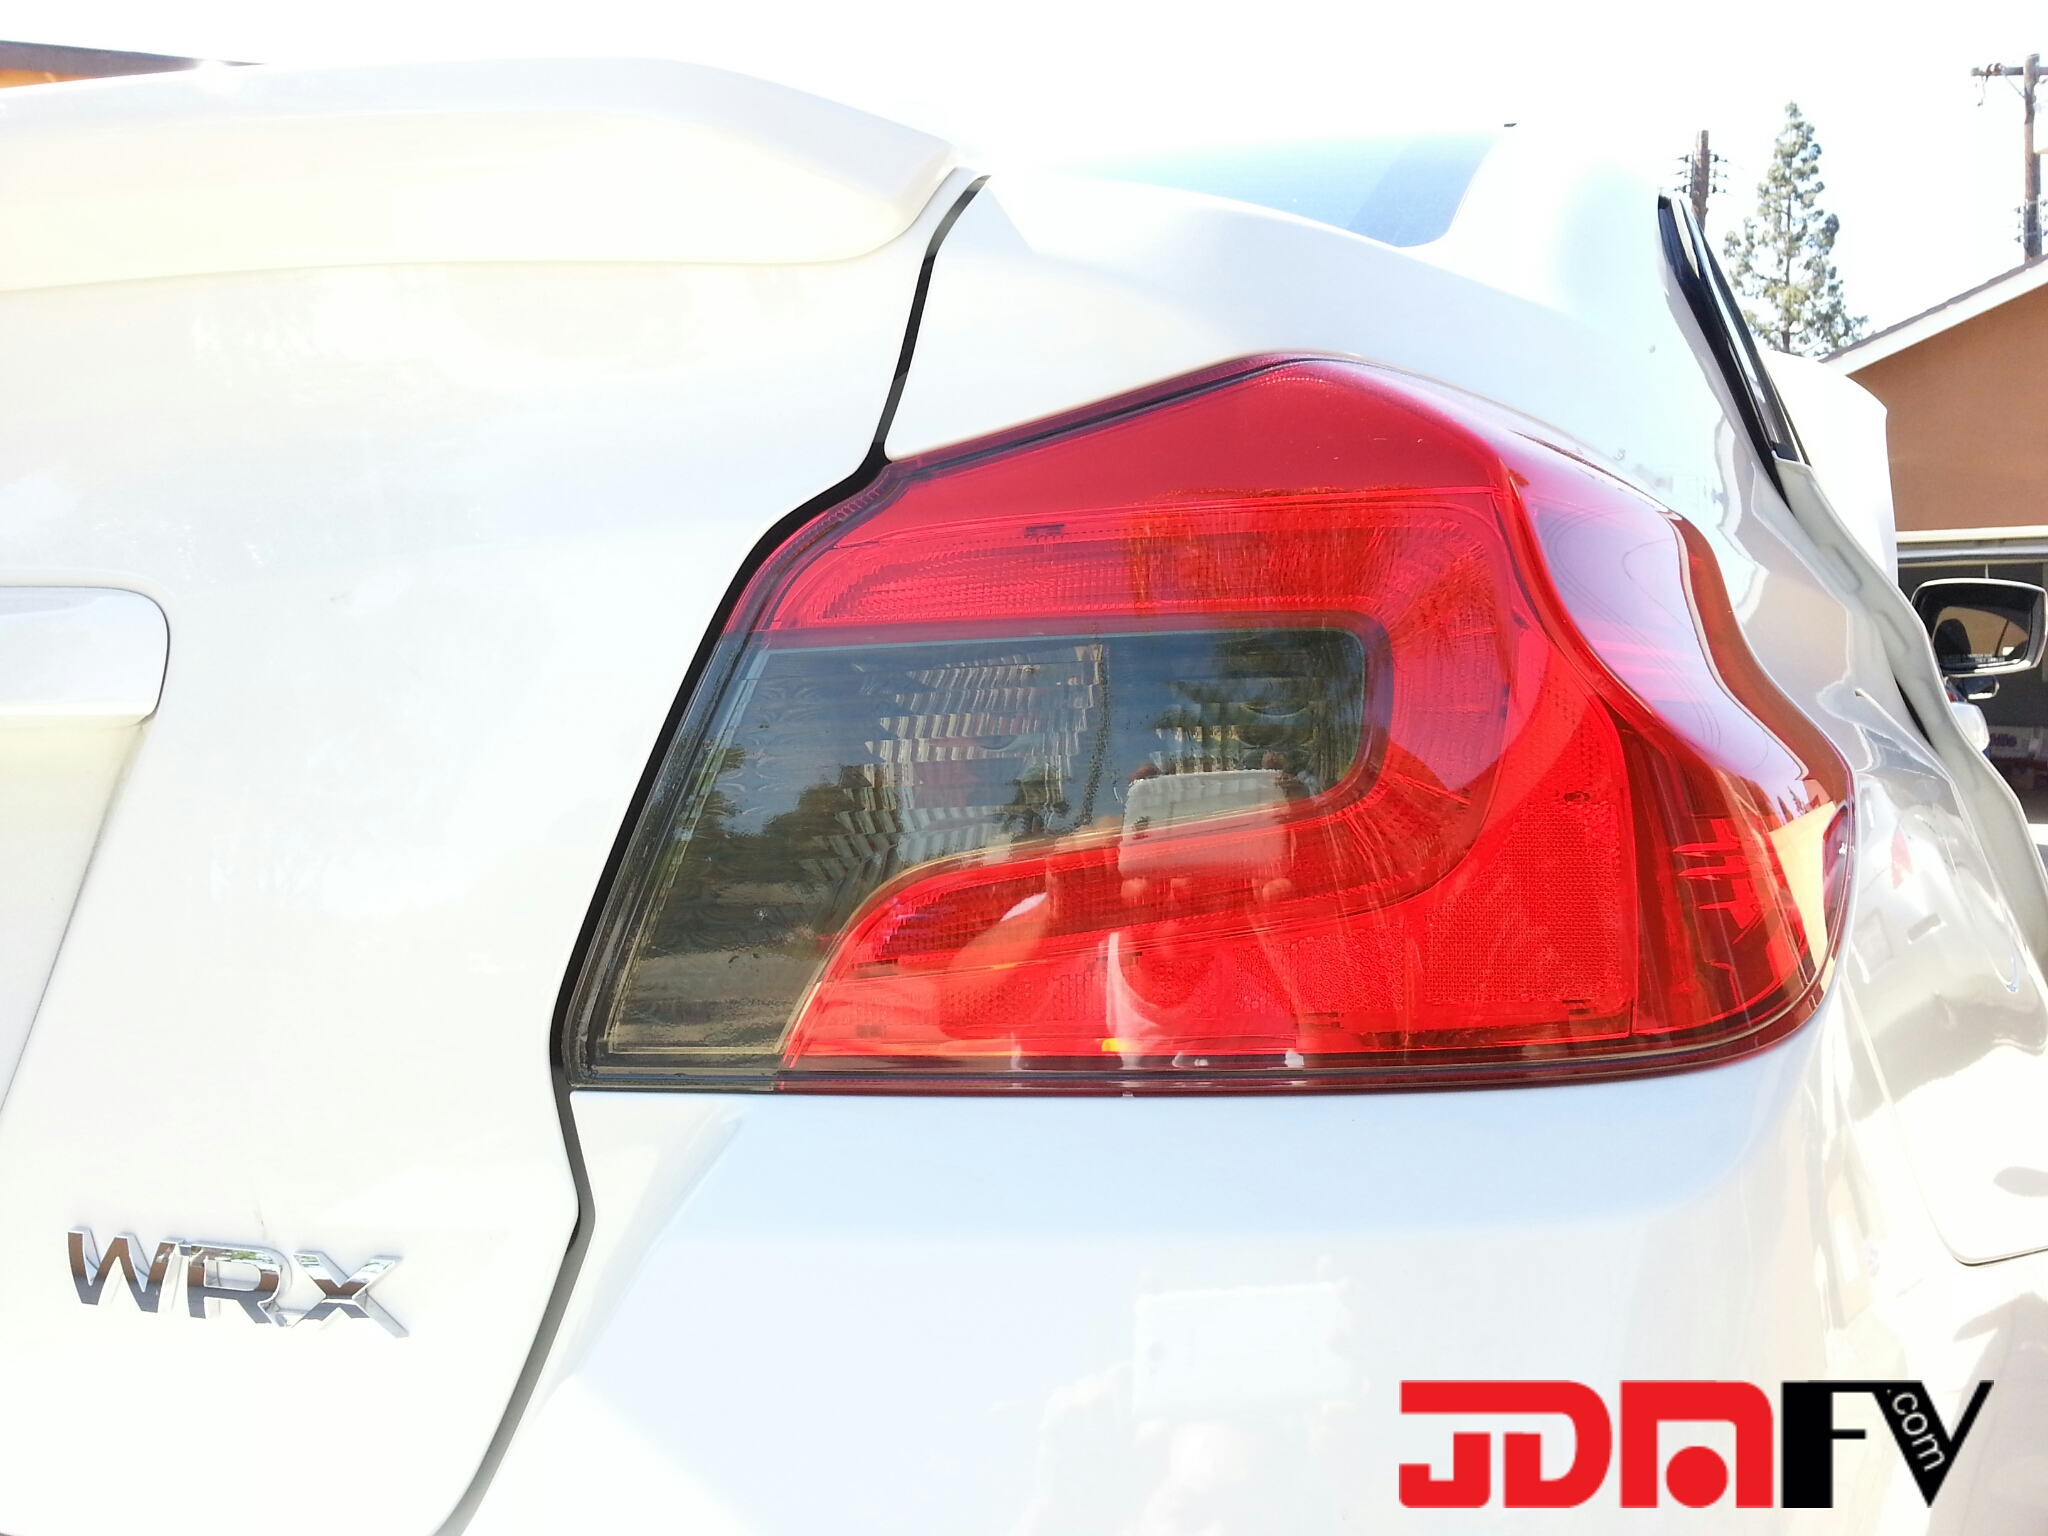 2015-wrx-sti-precut-tail-light-overlays-reverse-turn-signal-blinker-jdmfv.jpg